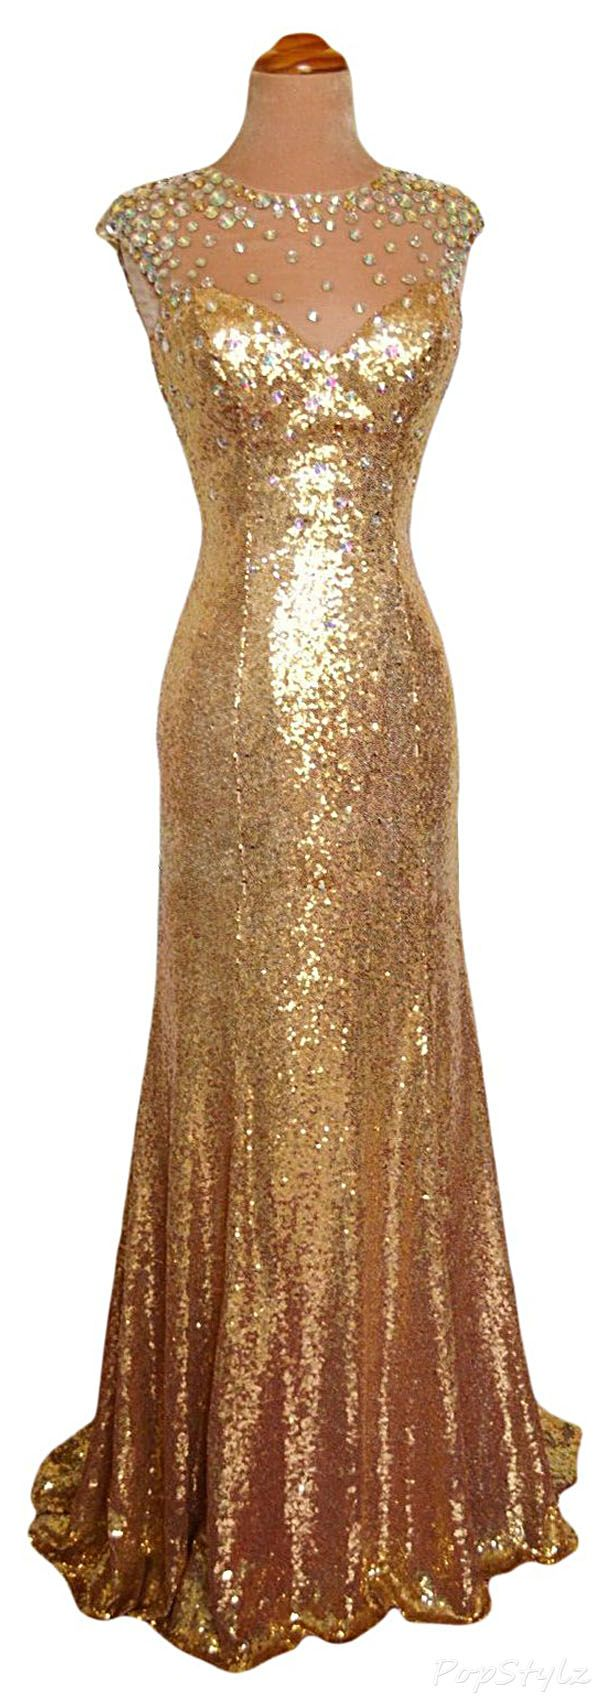 Sunvary gold jewel mermaid long shimmering gown glorious gold